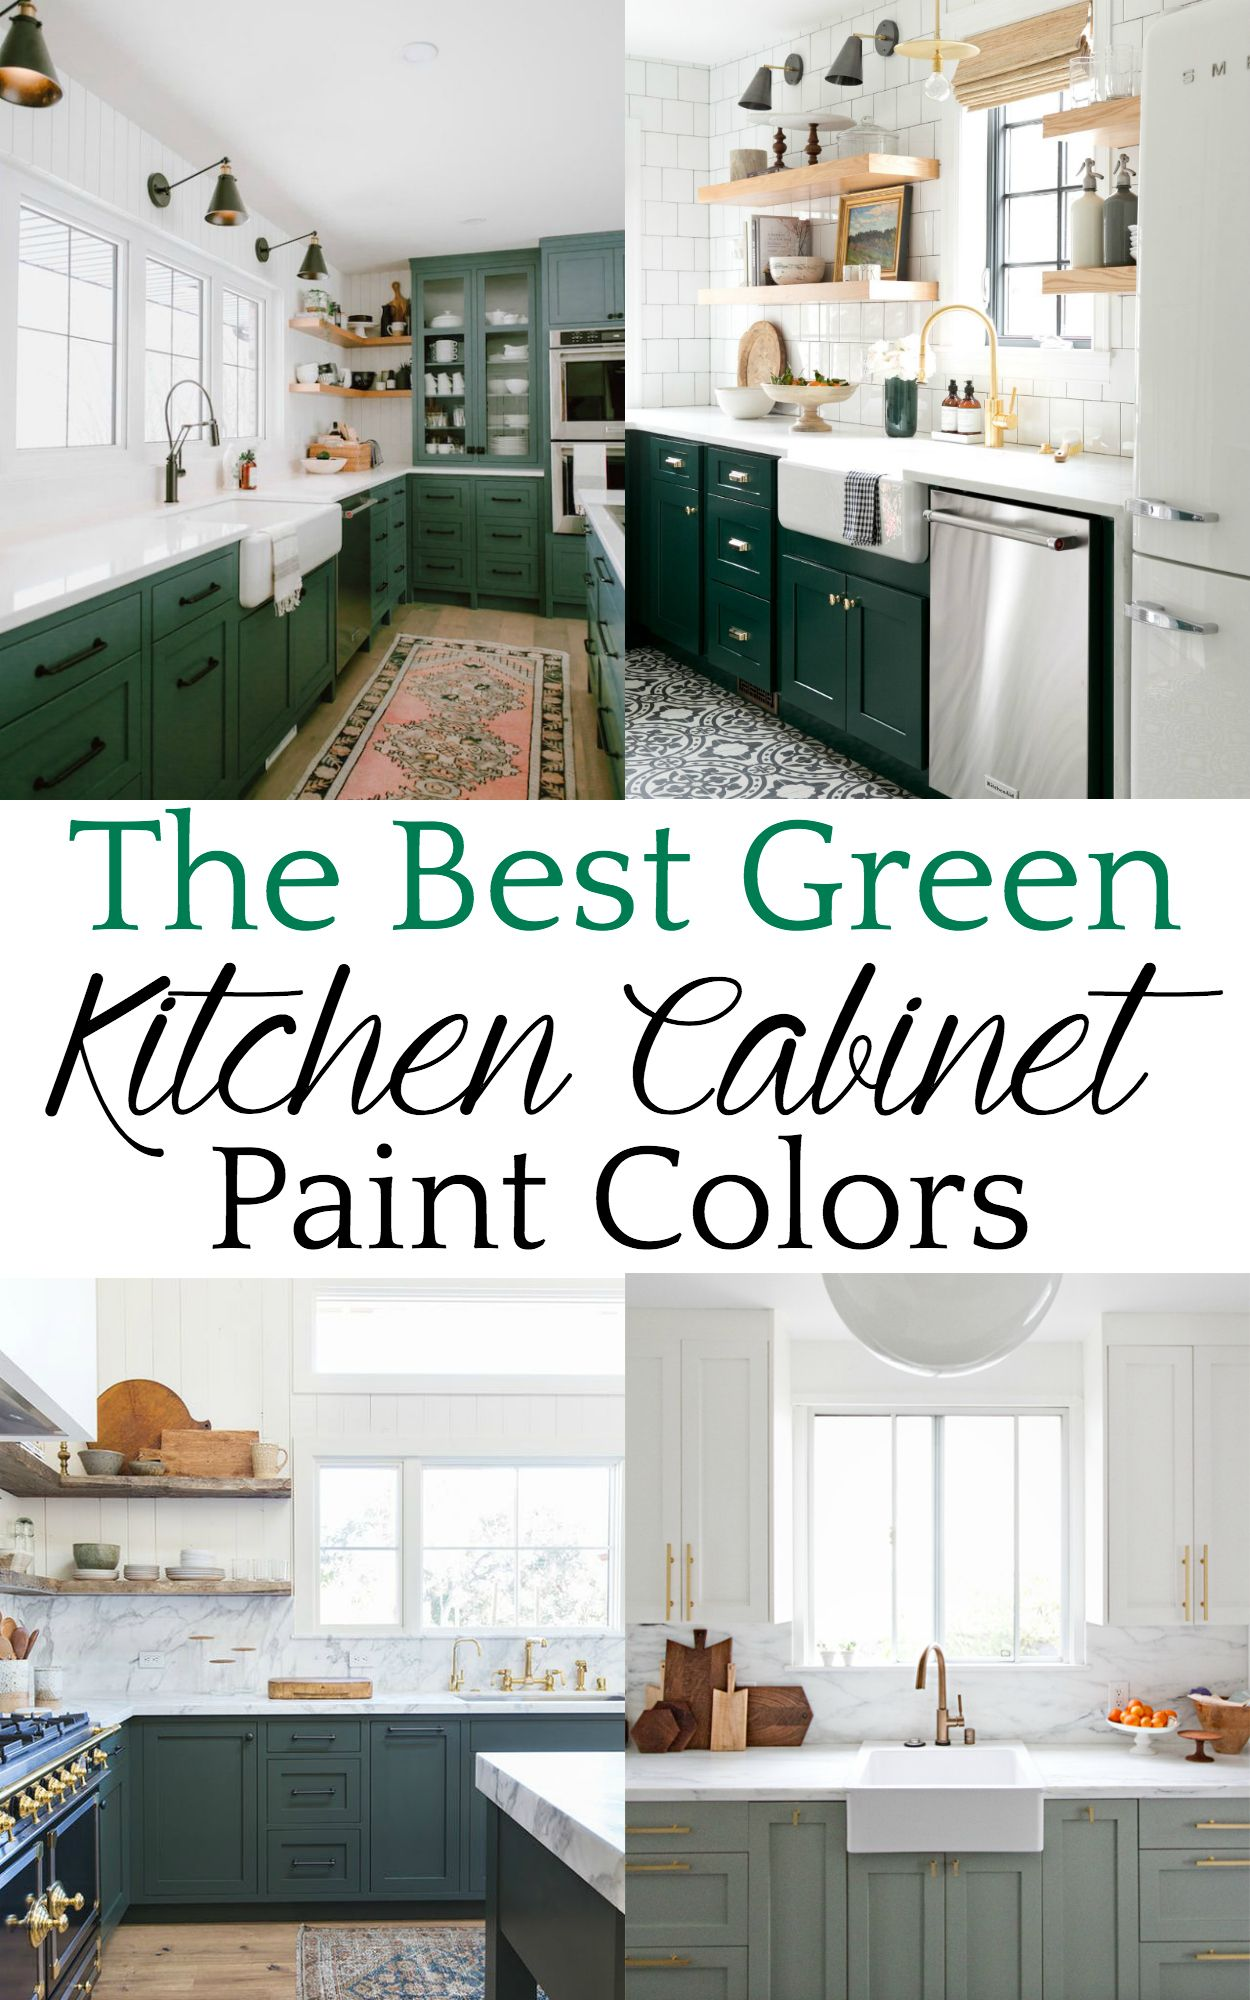 Green Kitchen Cabinet Inspiration Bless Er House Kitchen Cabinet Inspiration Green Kitchen Cabinets Painted Kitchen Cabinets Colors